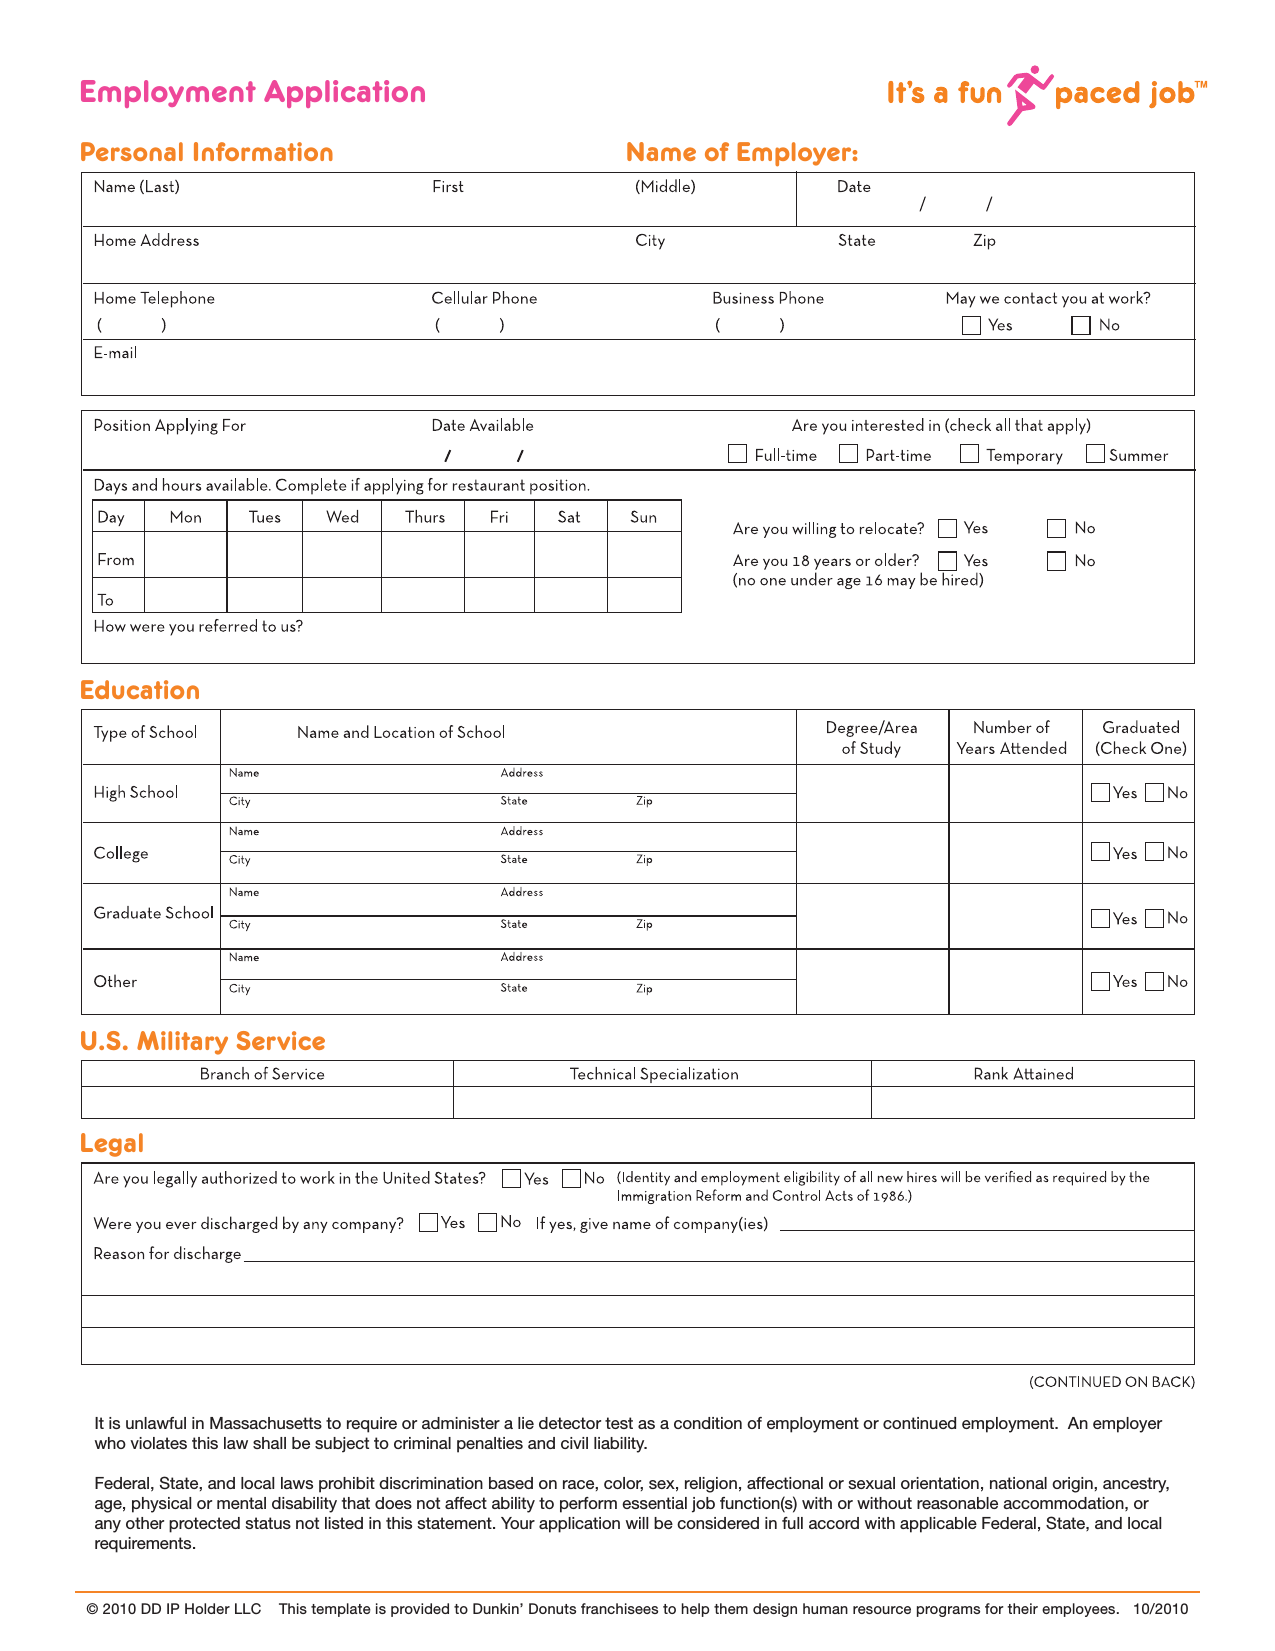 Download Dunkin Donuts Job Application Form- Careers | PDF ...